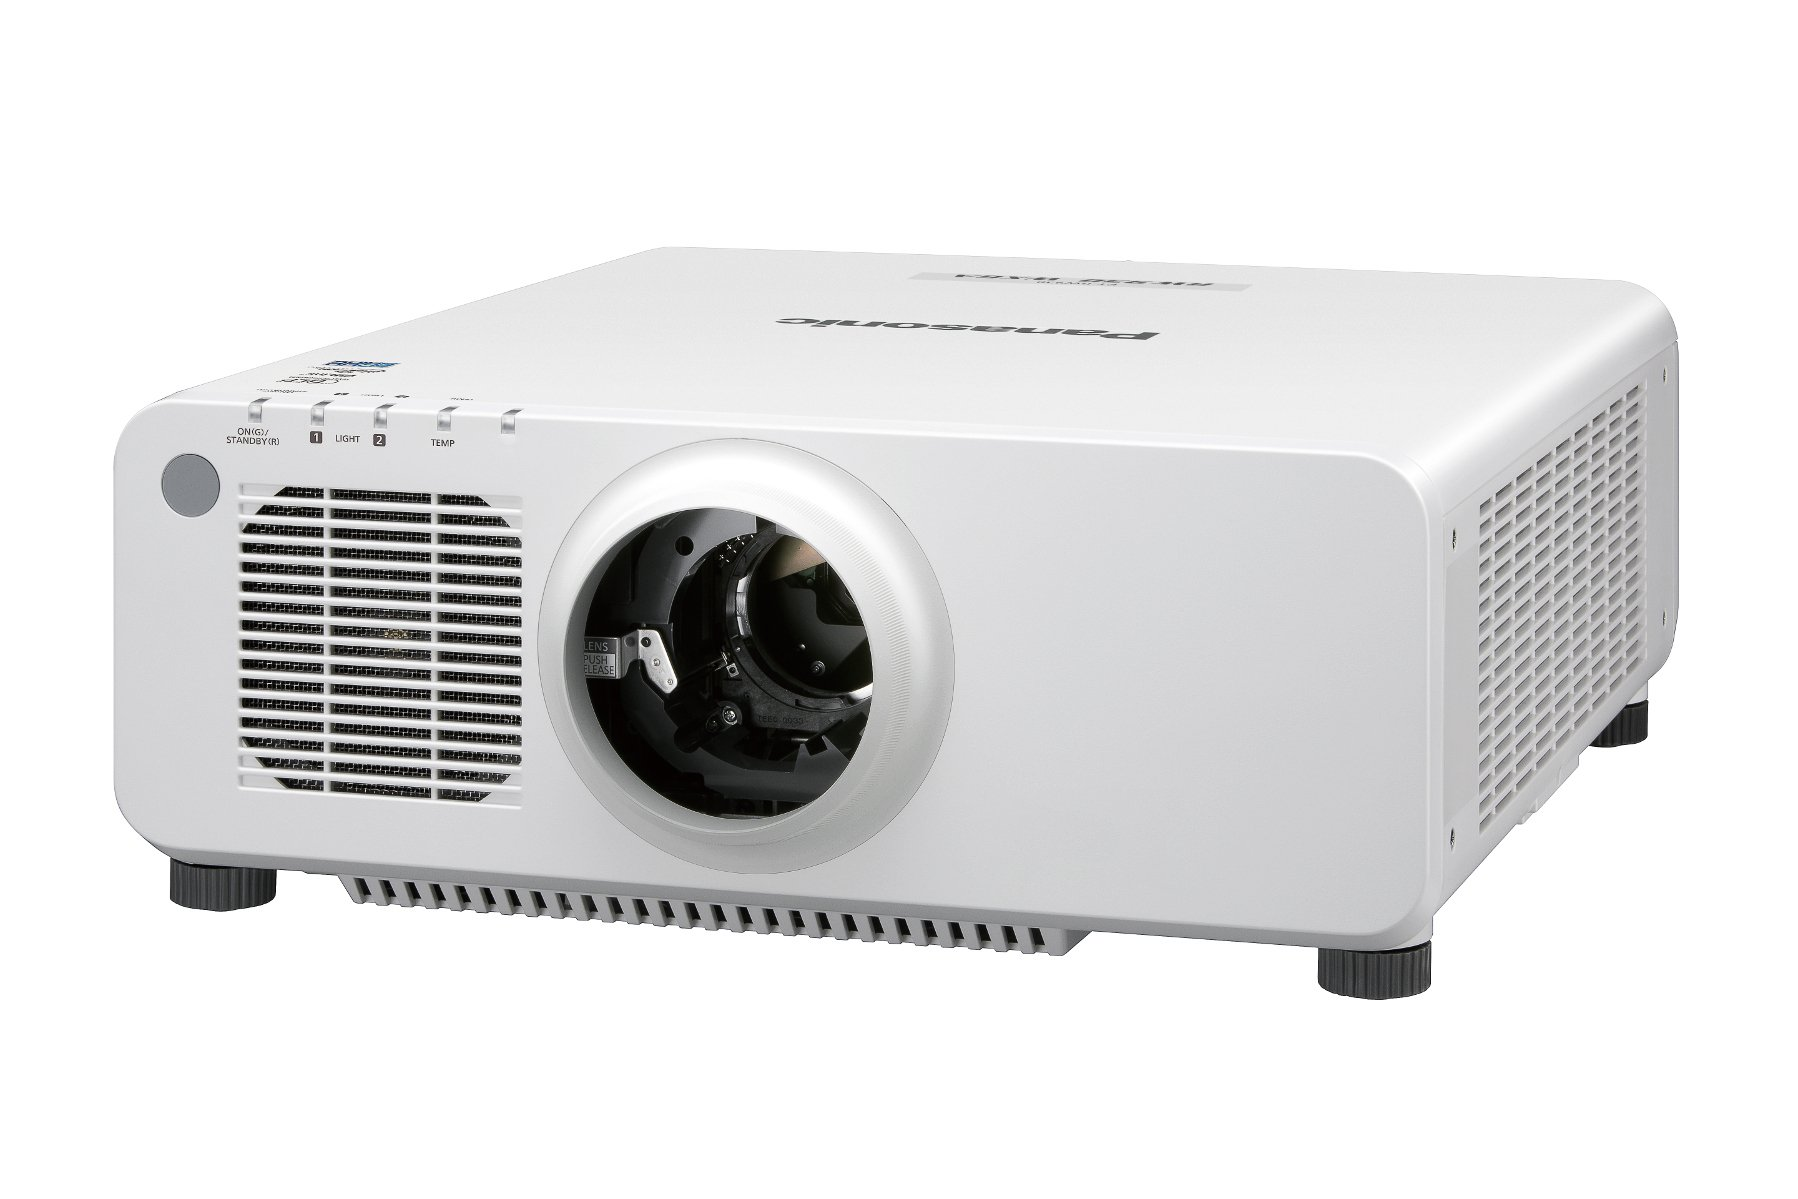 10,000 Lumens WXGA DLP Laser Projector in White